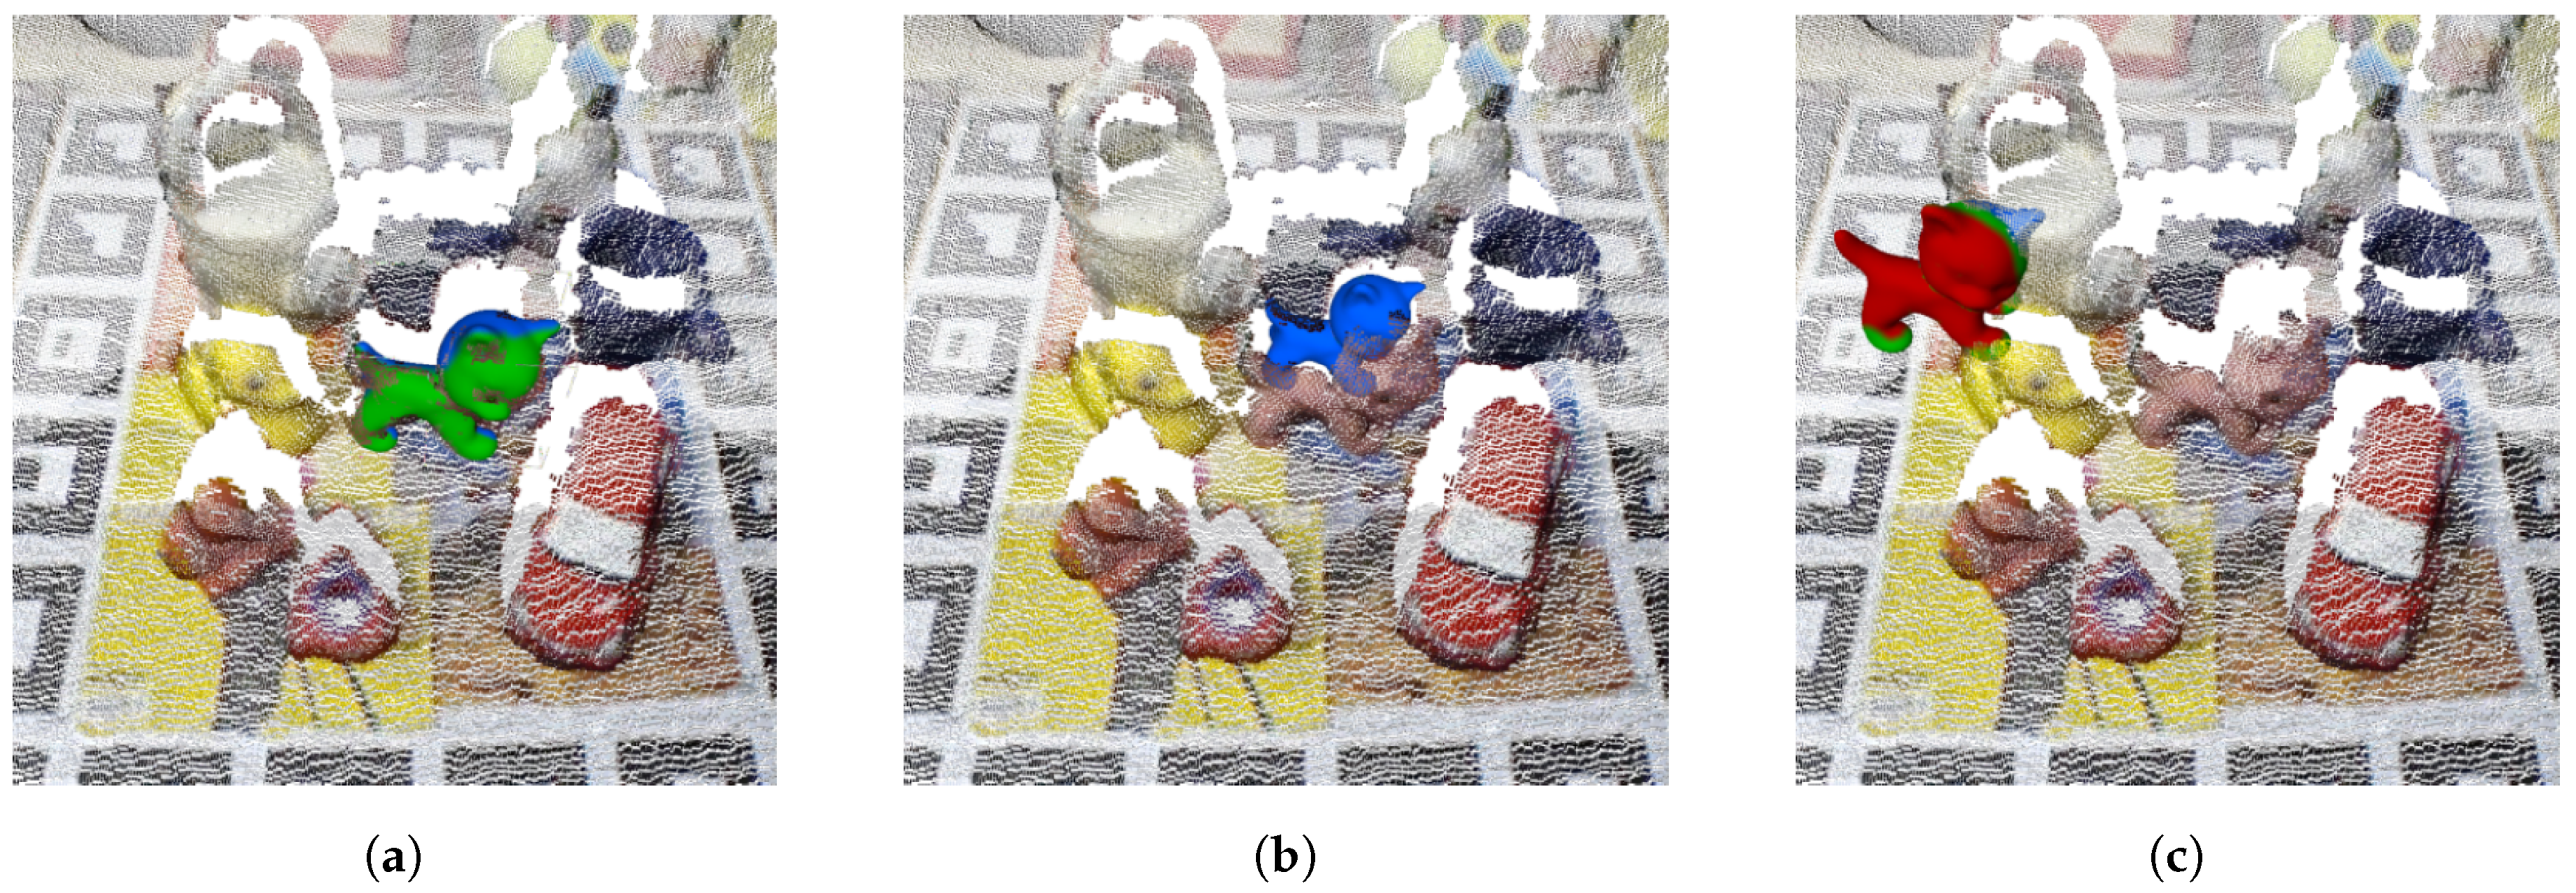 Sensors | Free Full-Text | A Method for 6D Pose Estimation